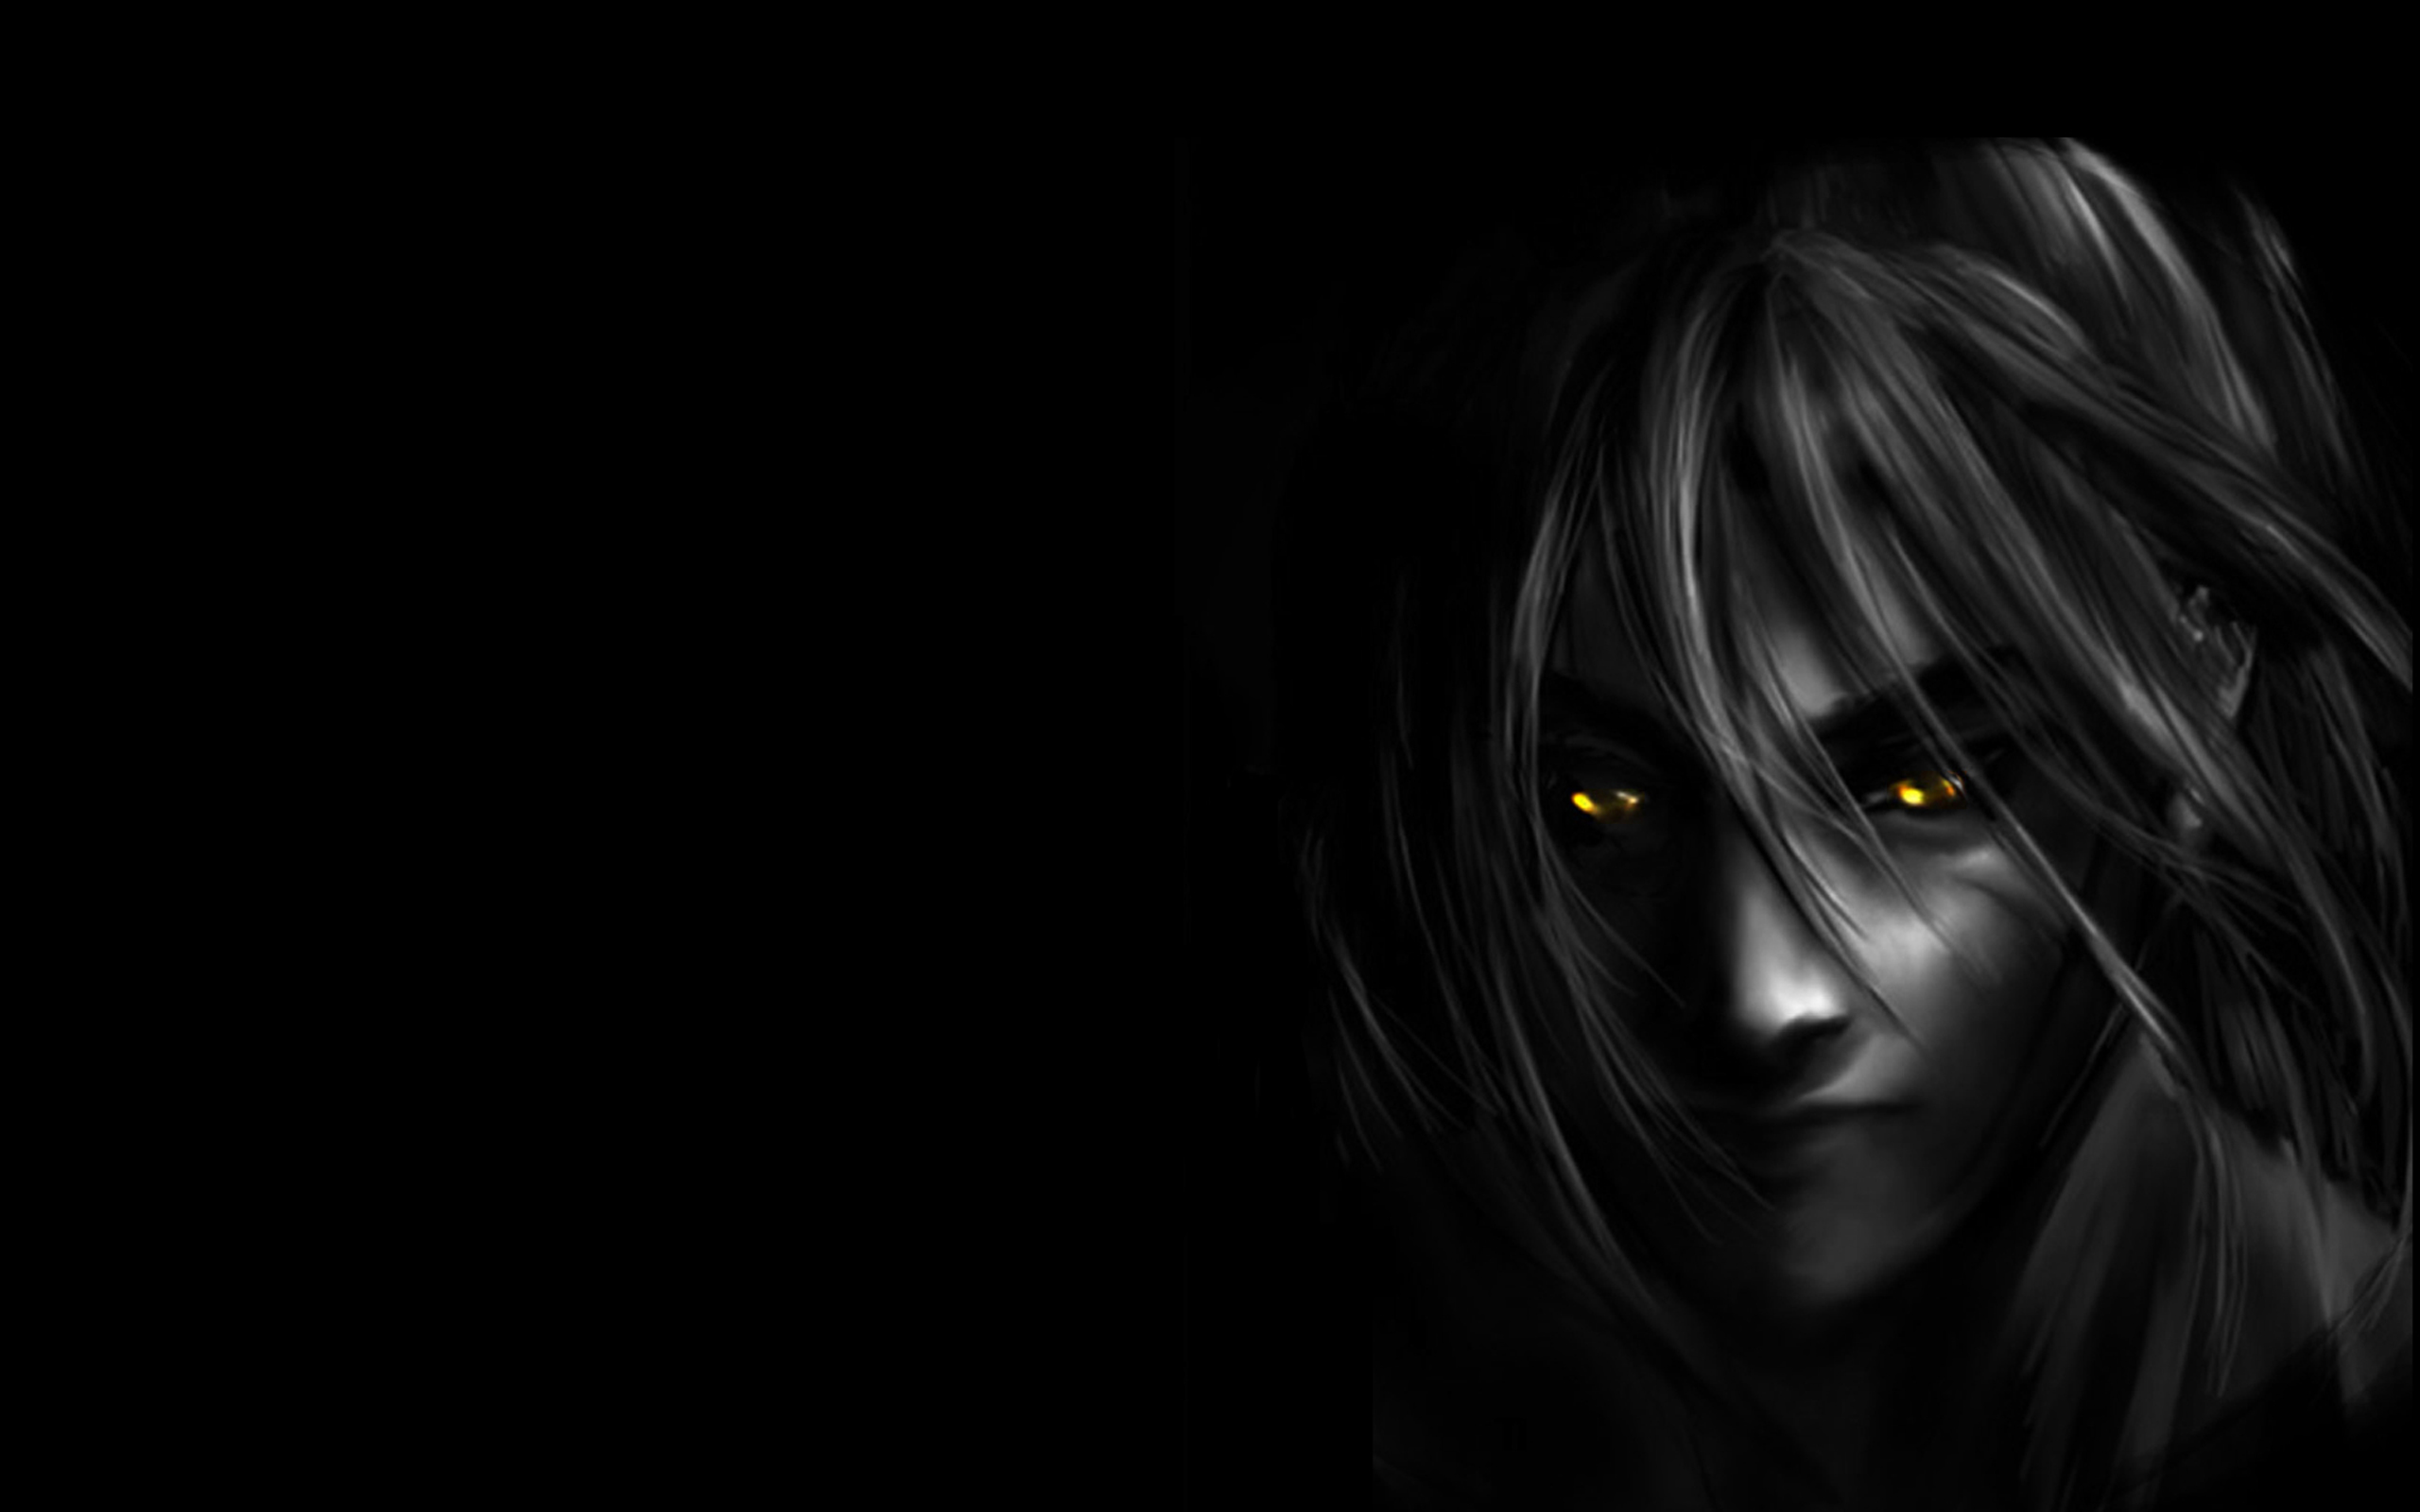 Dark Anime Backgrounds wallpaper wallpaper hd background desktop 2560x1600